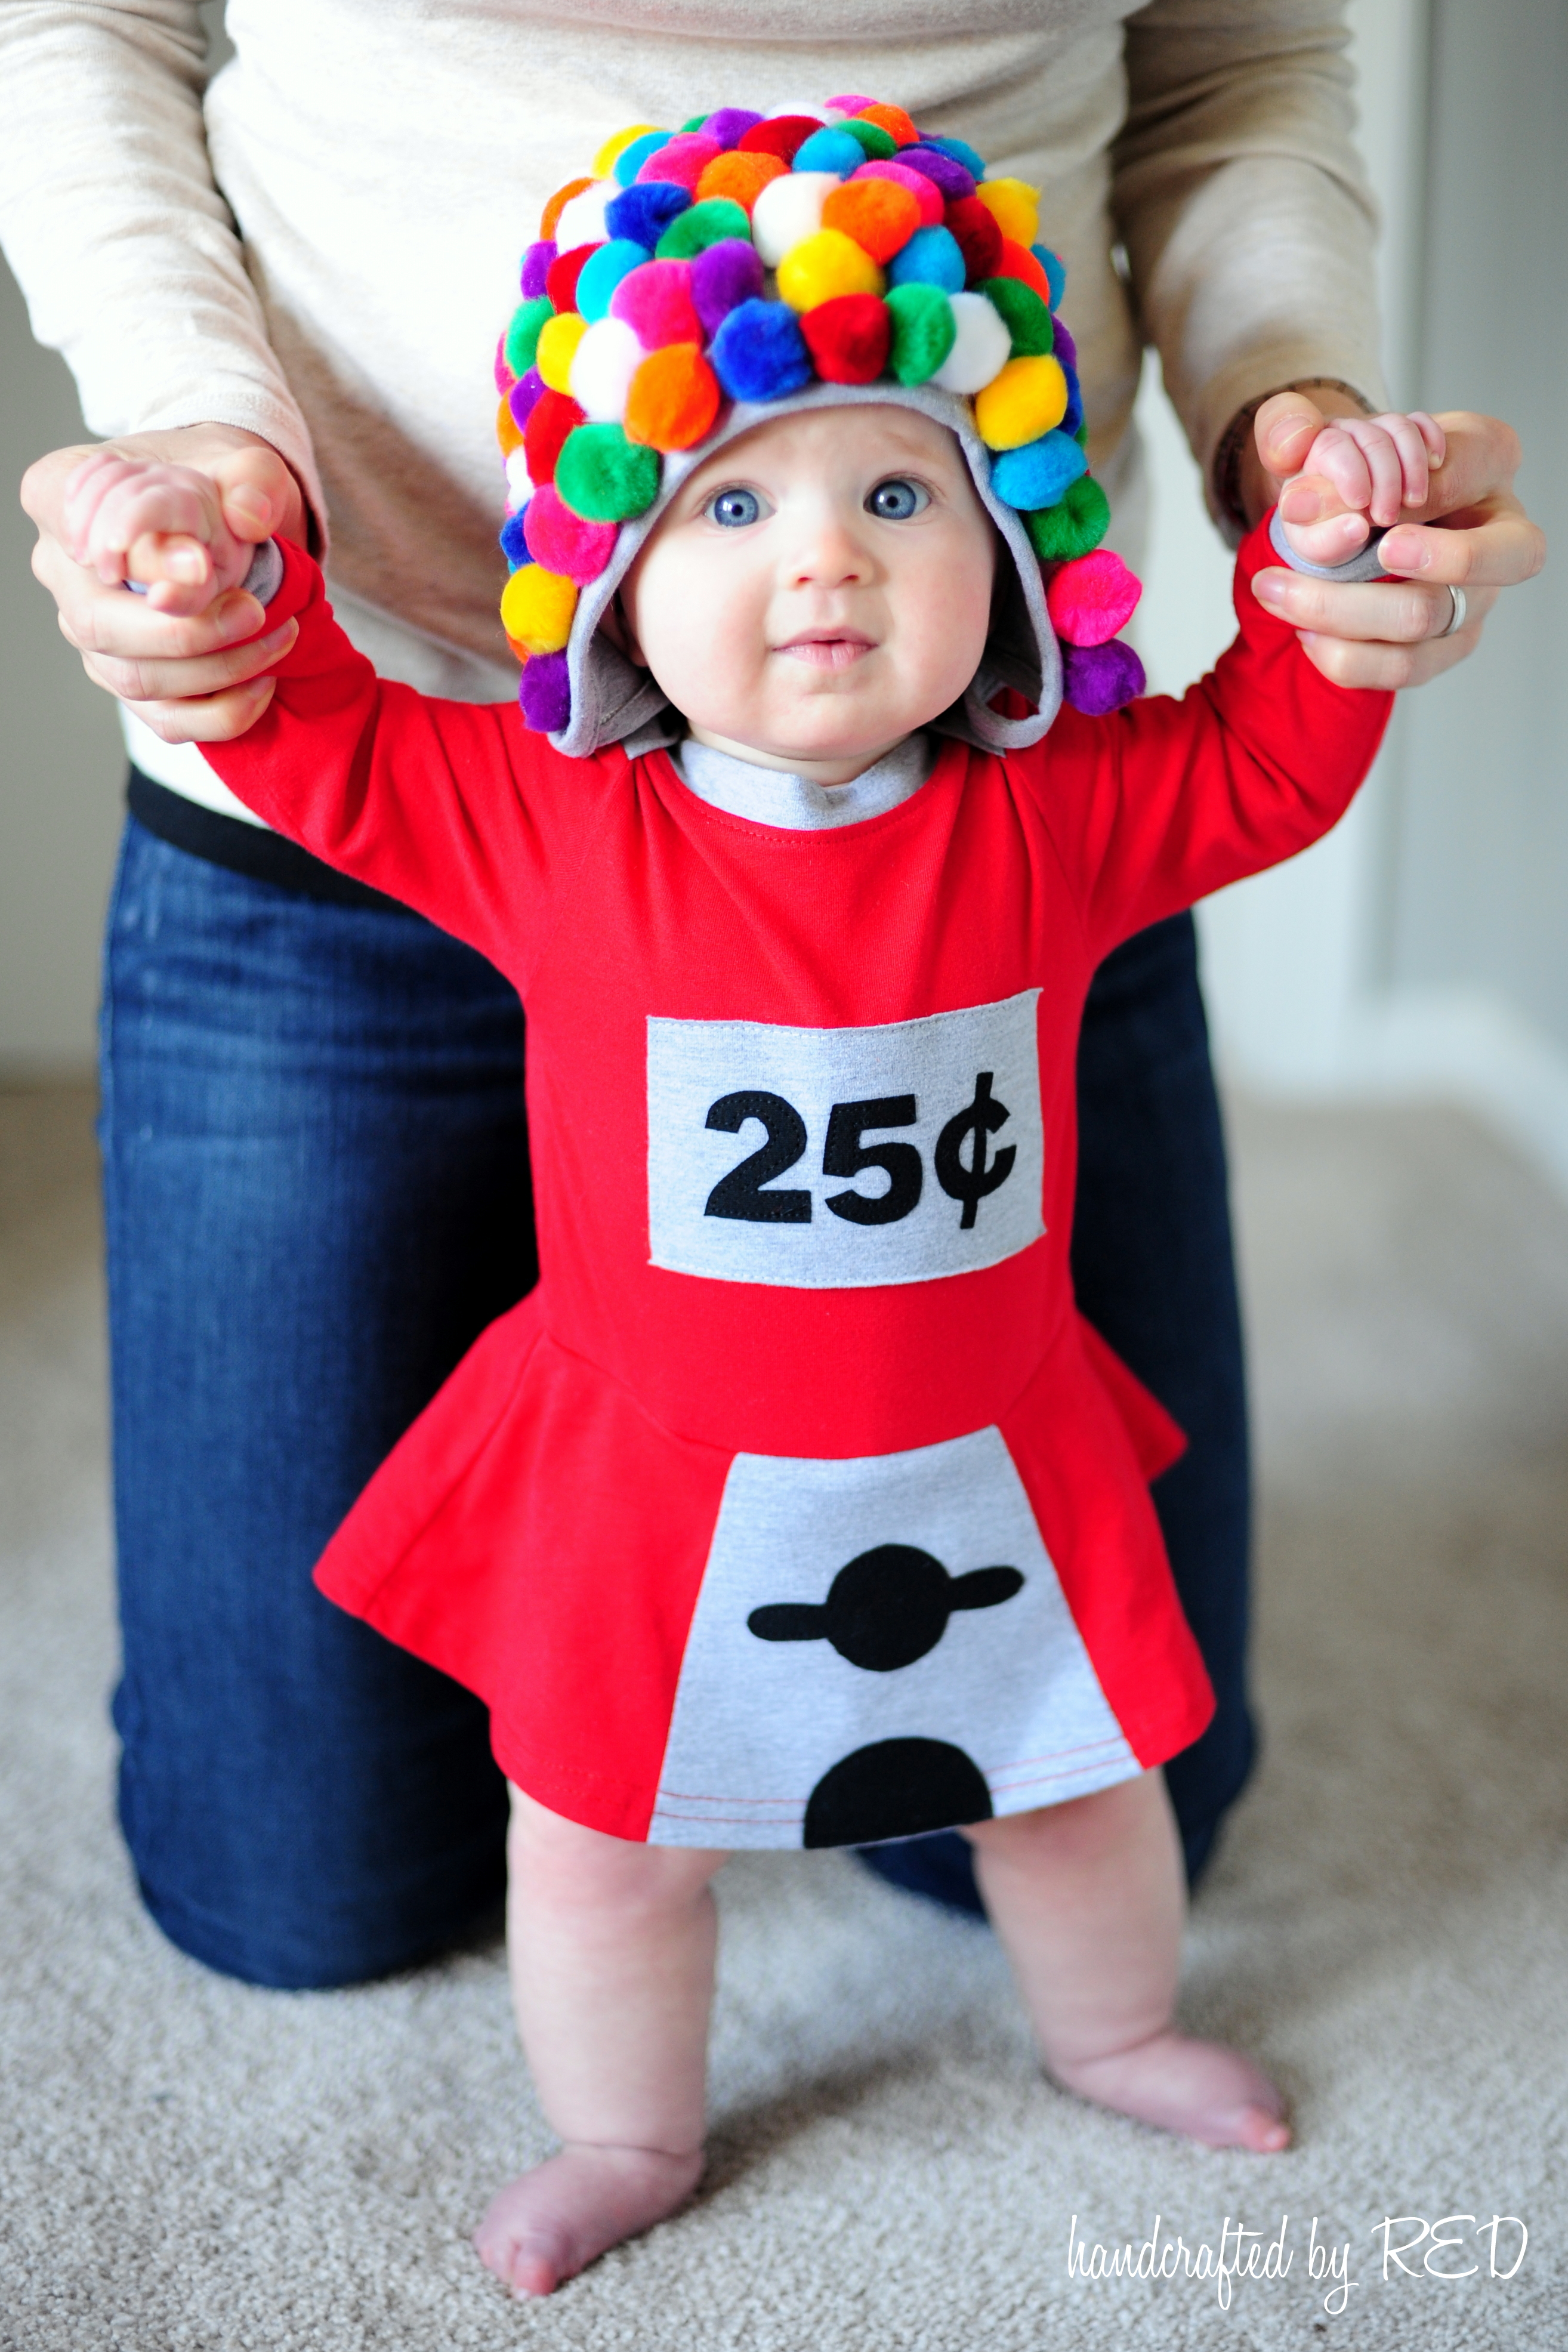 Halloween Costumes Ideas For Babies: DIY Baby Gumball Machine Costume